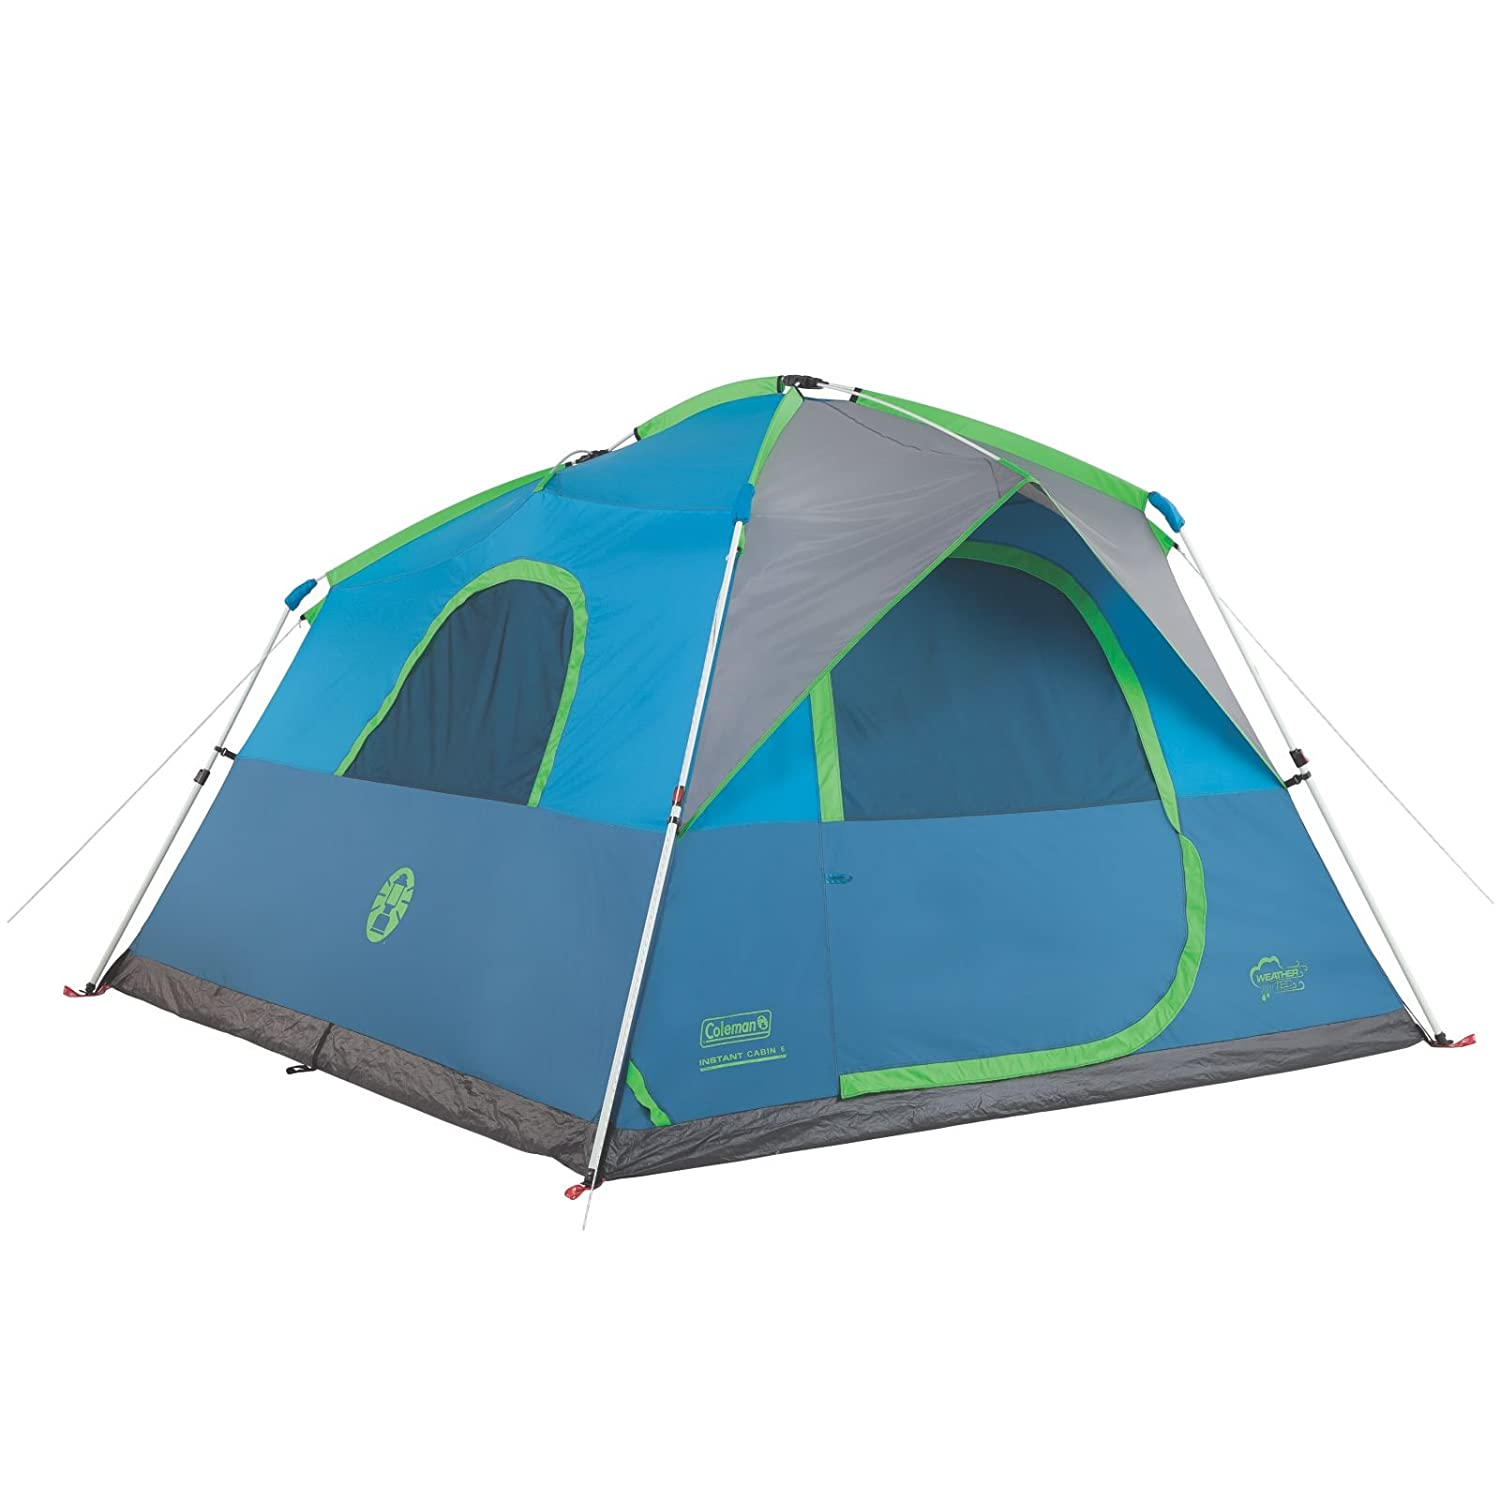 Amazon.com  Coleman C&ing 6 Person Instant Signal Mountain Tent  Sports u0026 Outdoors  sc 1 st  Amazon.com & Amazon.com : Coleman Camping 6 Person Instant Signal Mountain Tent ...